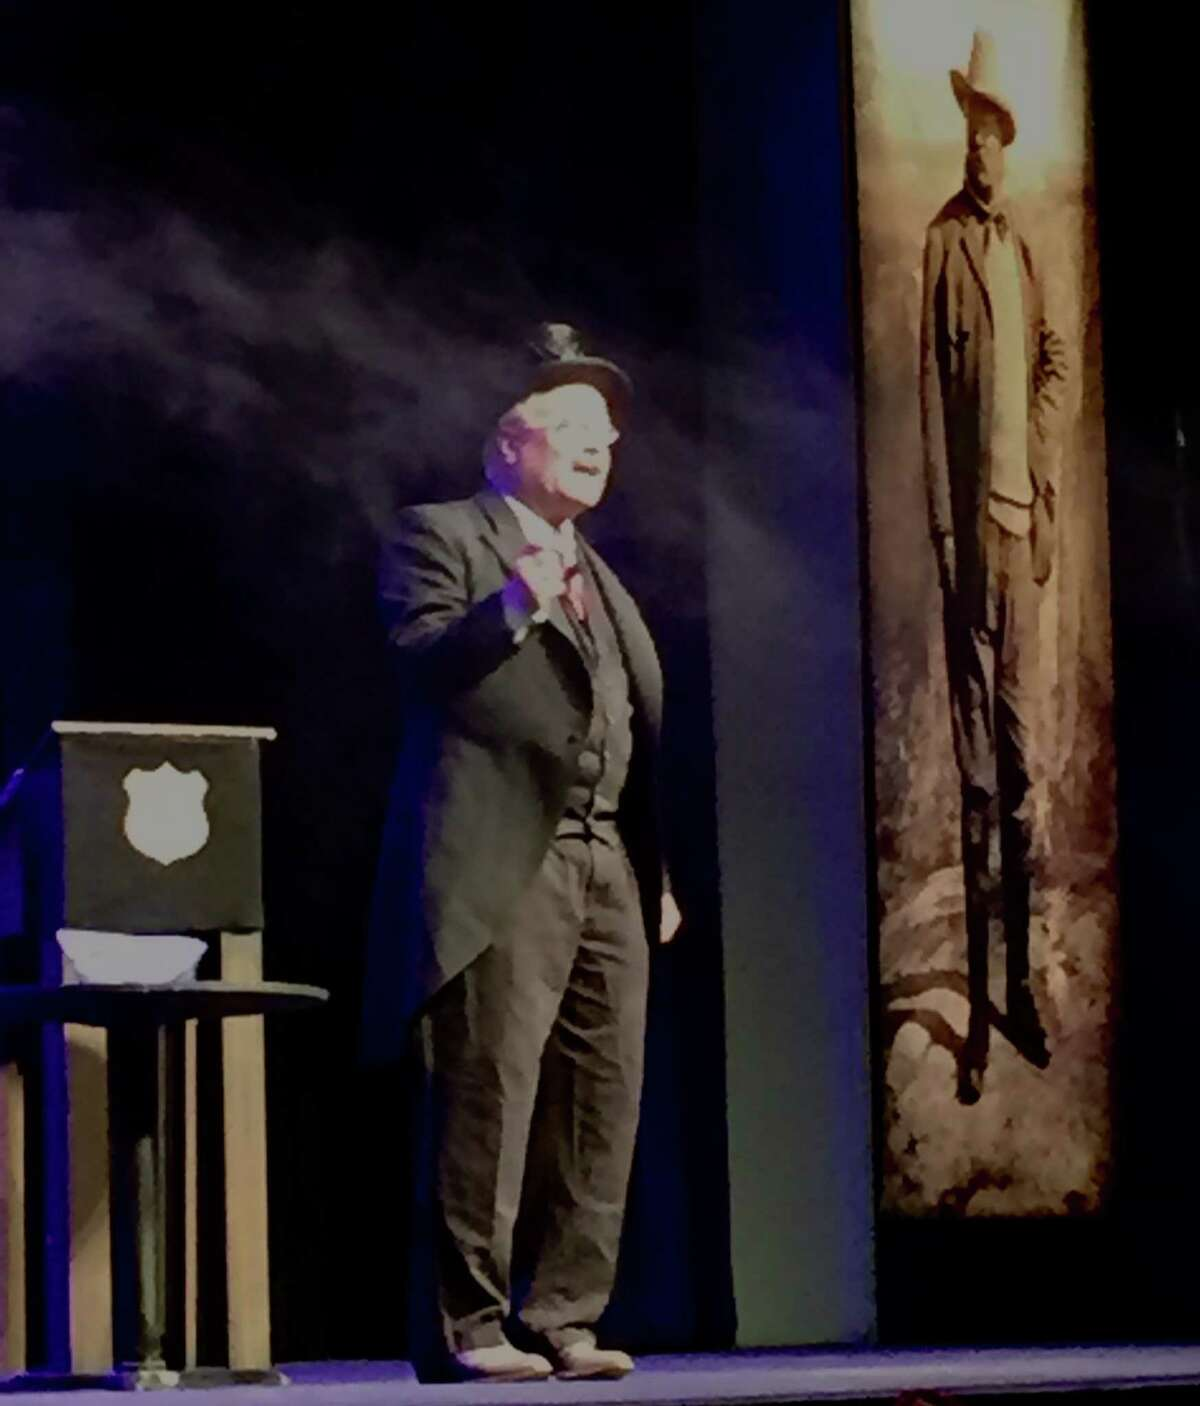 Clay Jenkinson portrays Theodore Roosevelt on stage at Dickinson State University during the 11th annual Theodore Roosevelt Symposium in Dickinson, ND last Saturday (Paul Grondahl / Times Union)